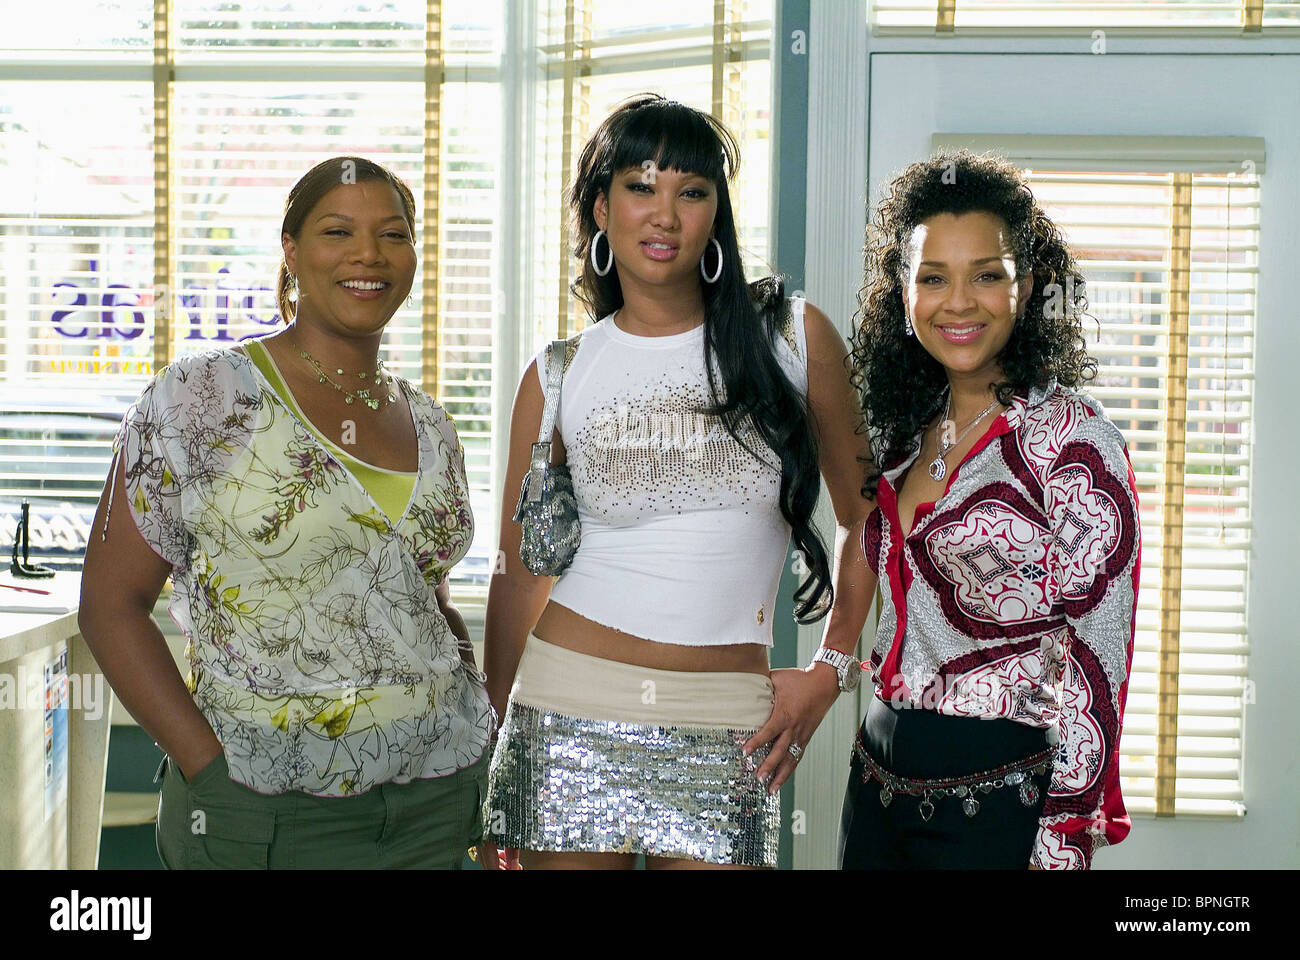 QUEEN LATIFAH KIMORA LEE LISARAYE BEAUTY SHOP 2005